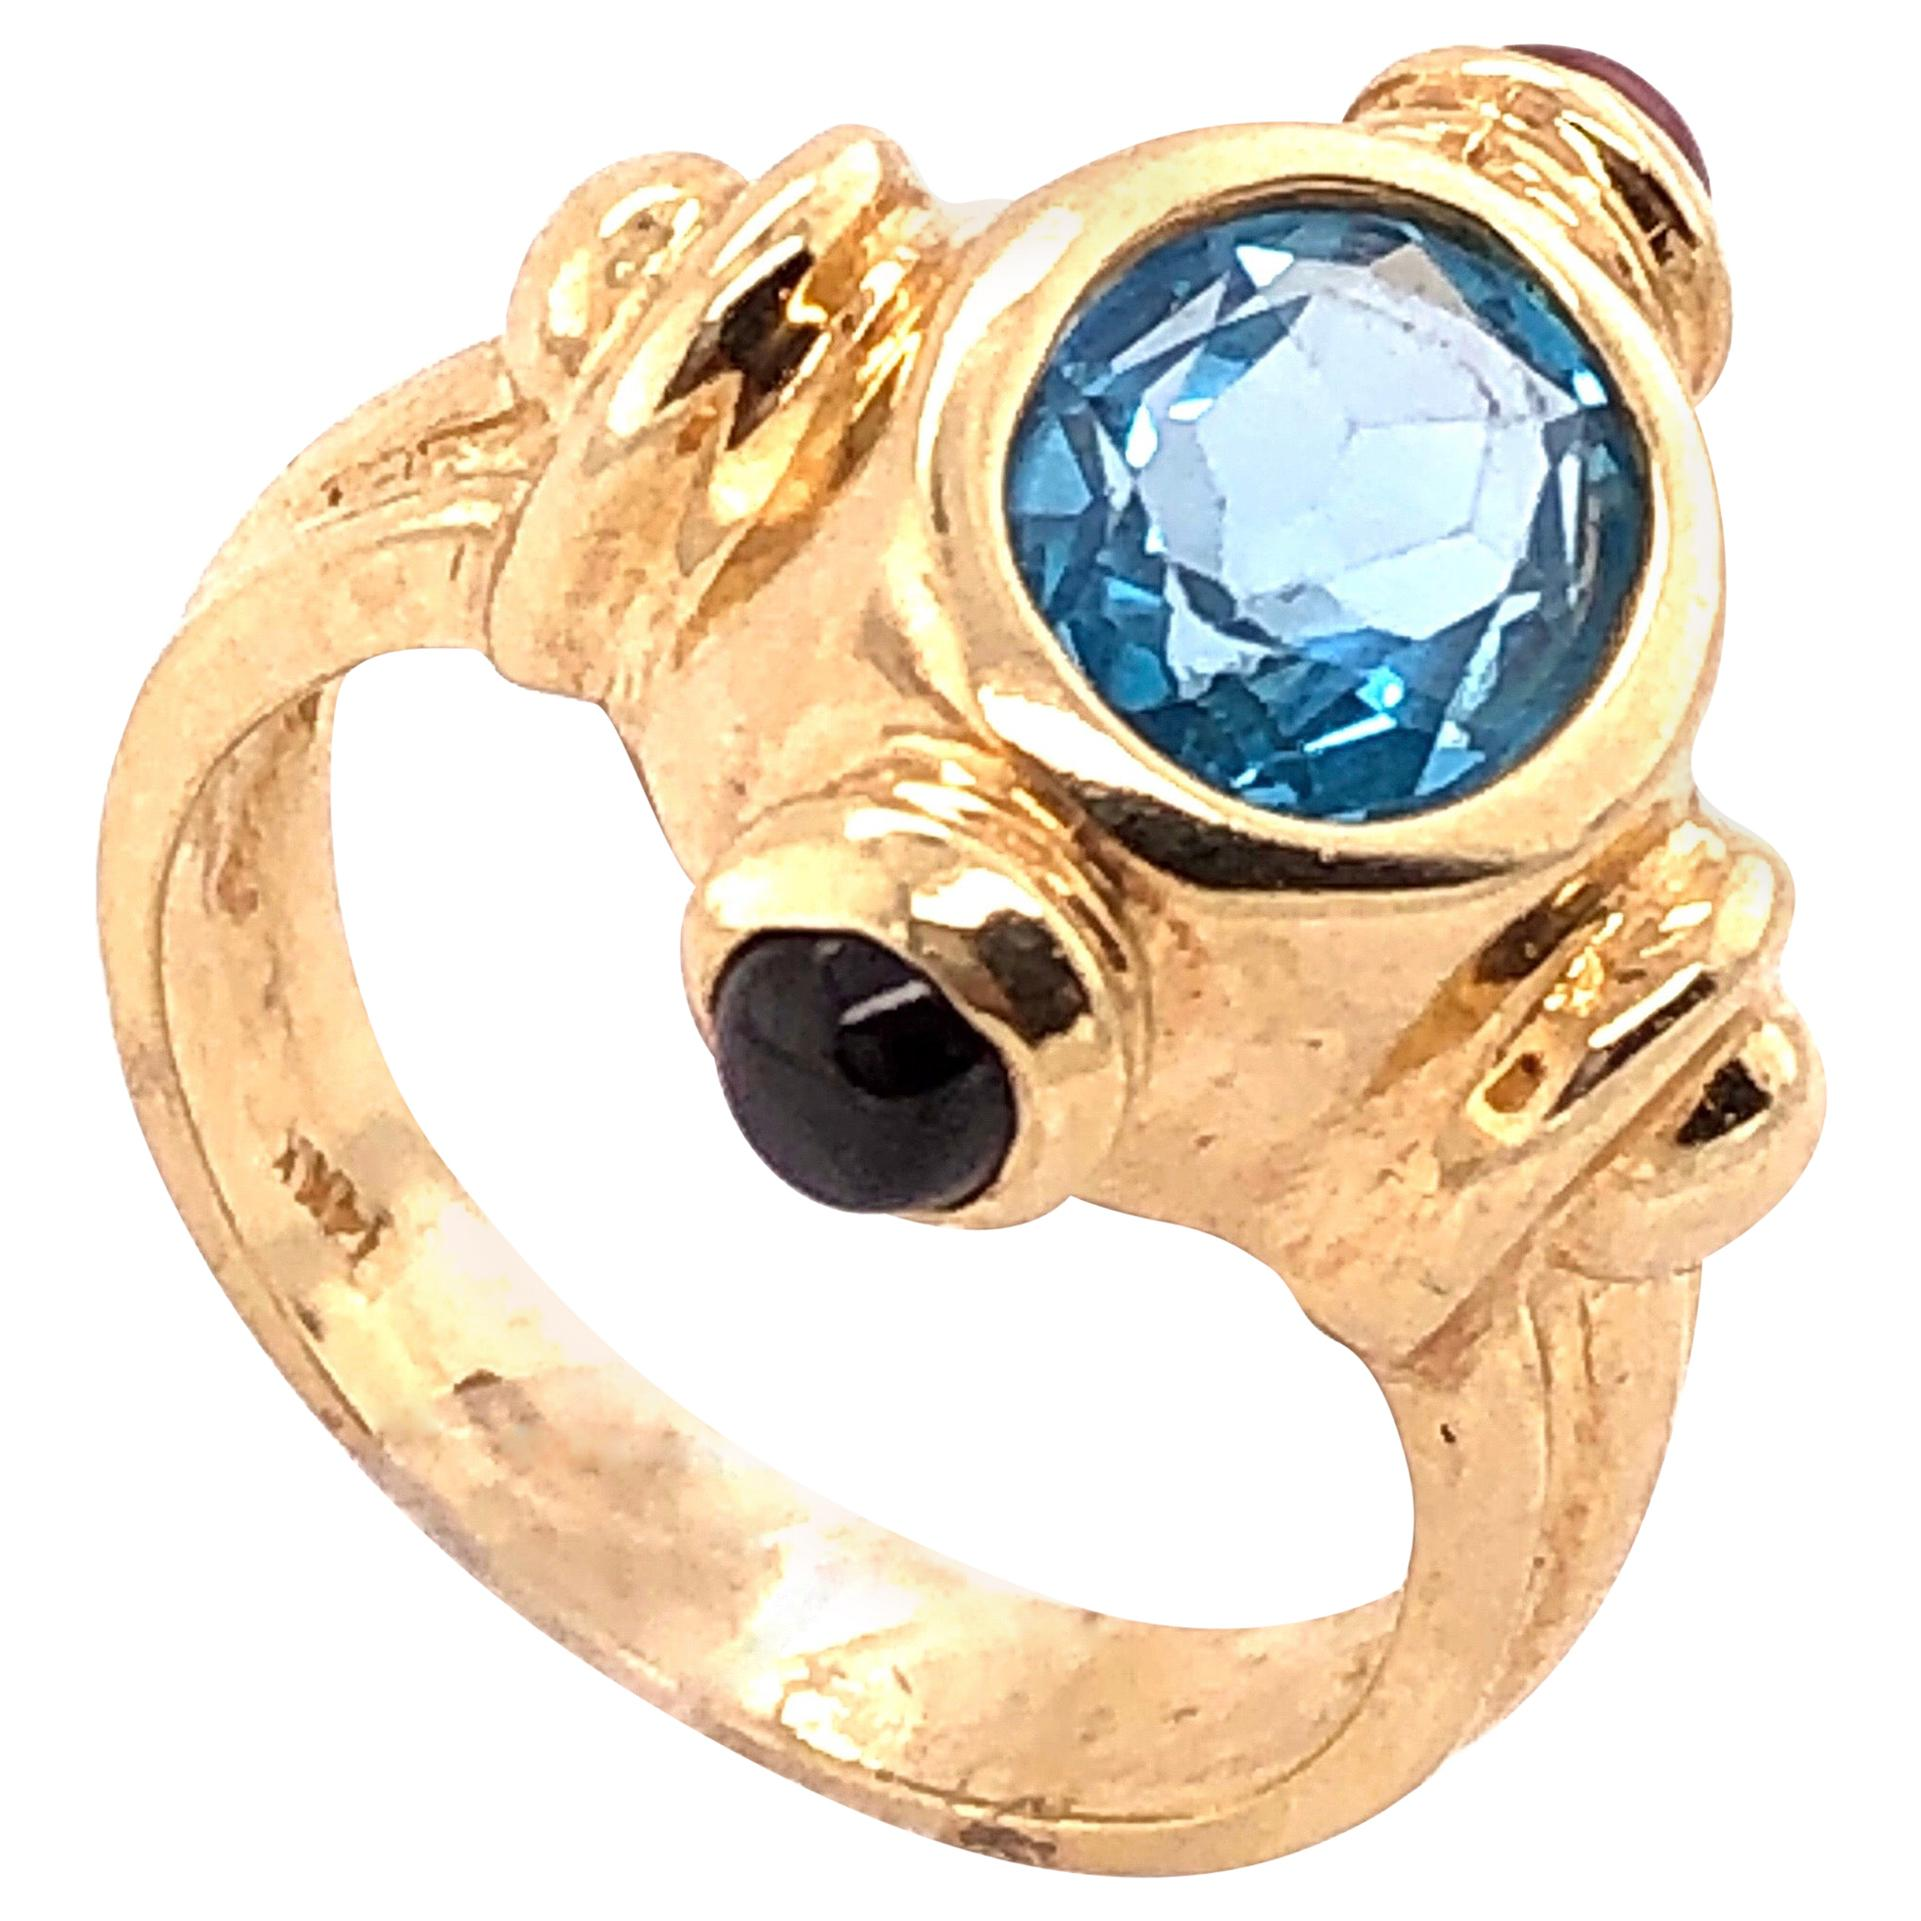 14 Karat Yellow Gold Free Form Ring with Stones